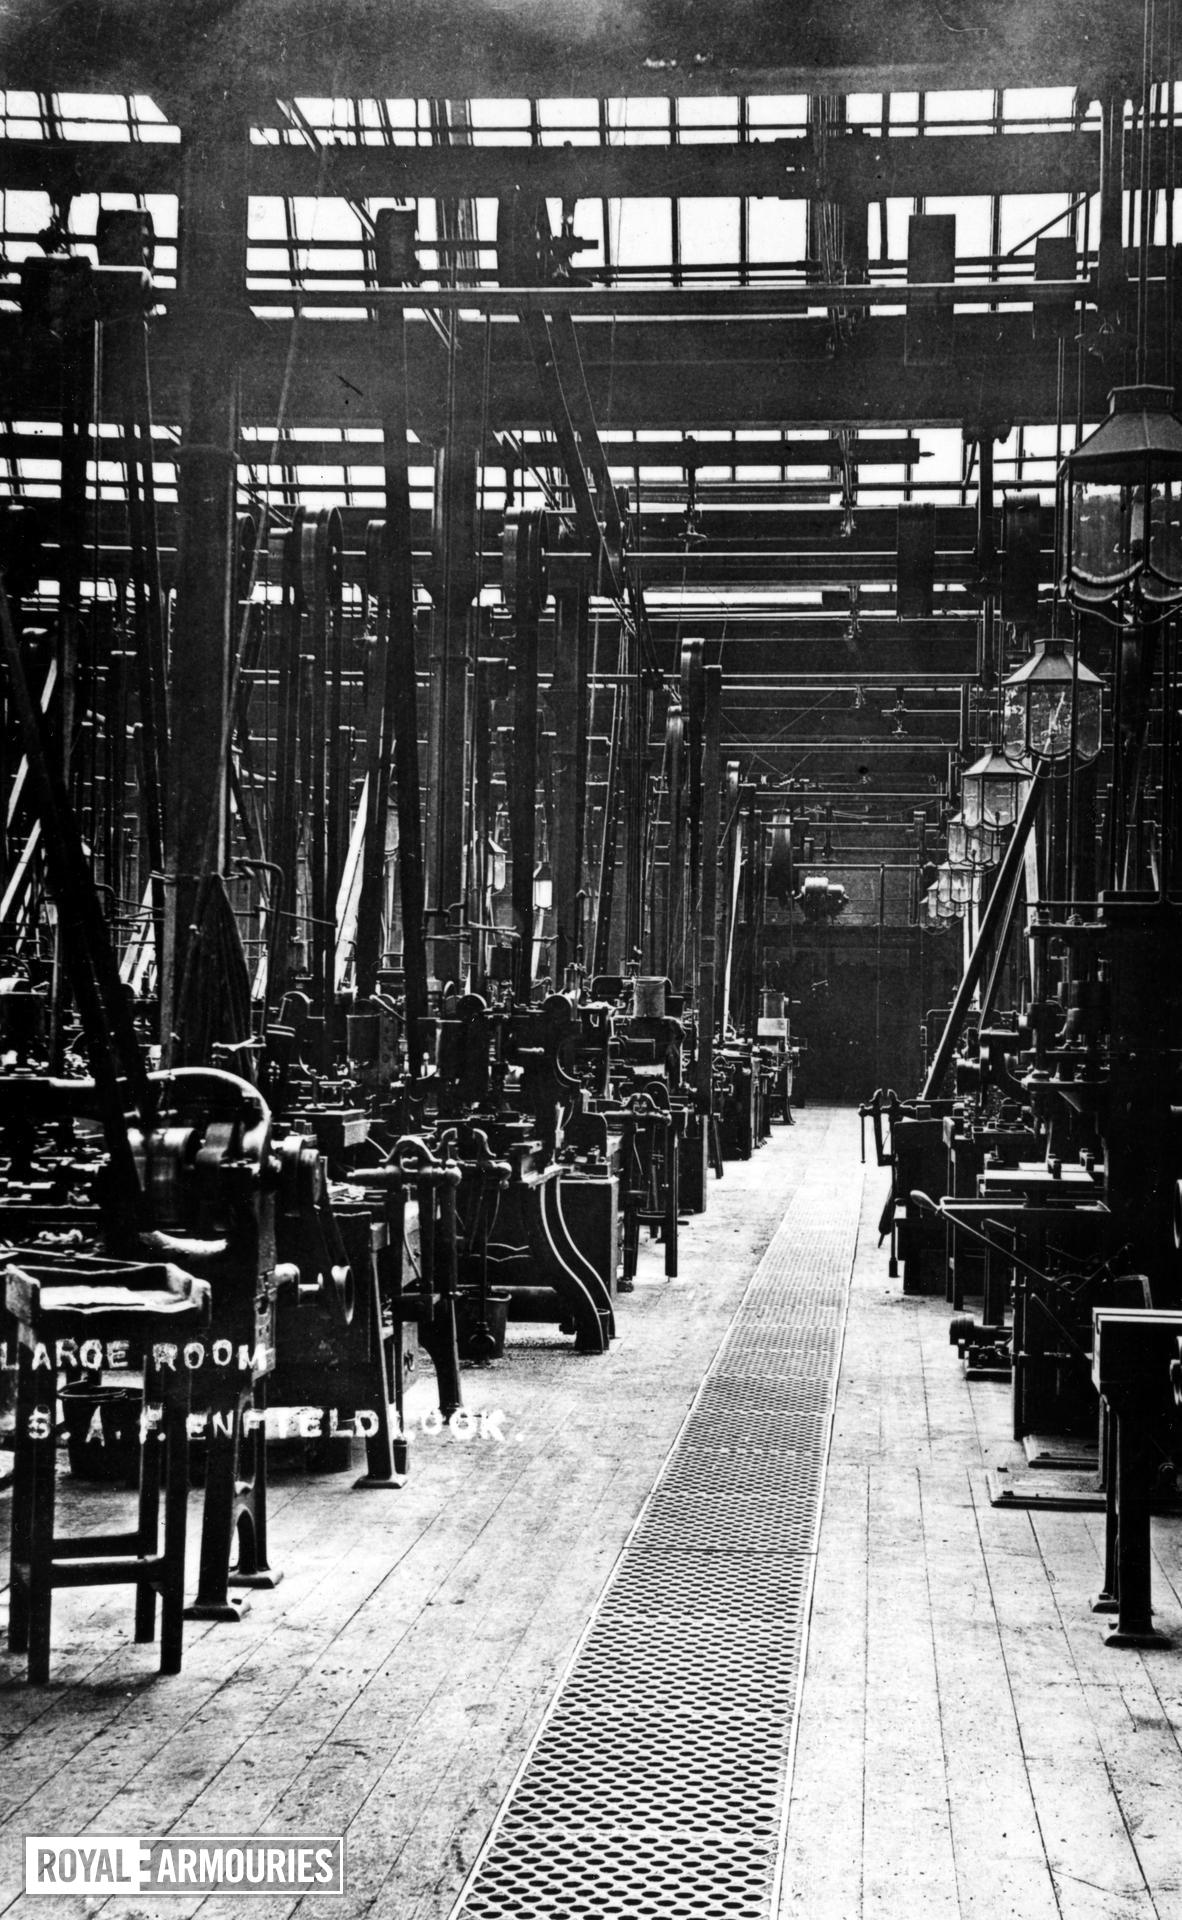 Photograph showing 'the large room' at the Royal Small Arms Factory, Enfield Lock, Britain, early 20th century